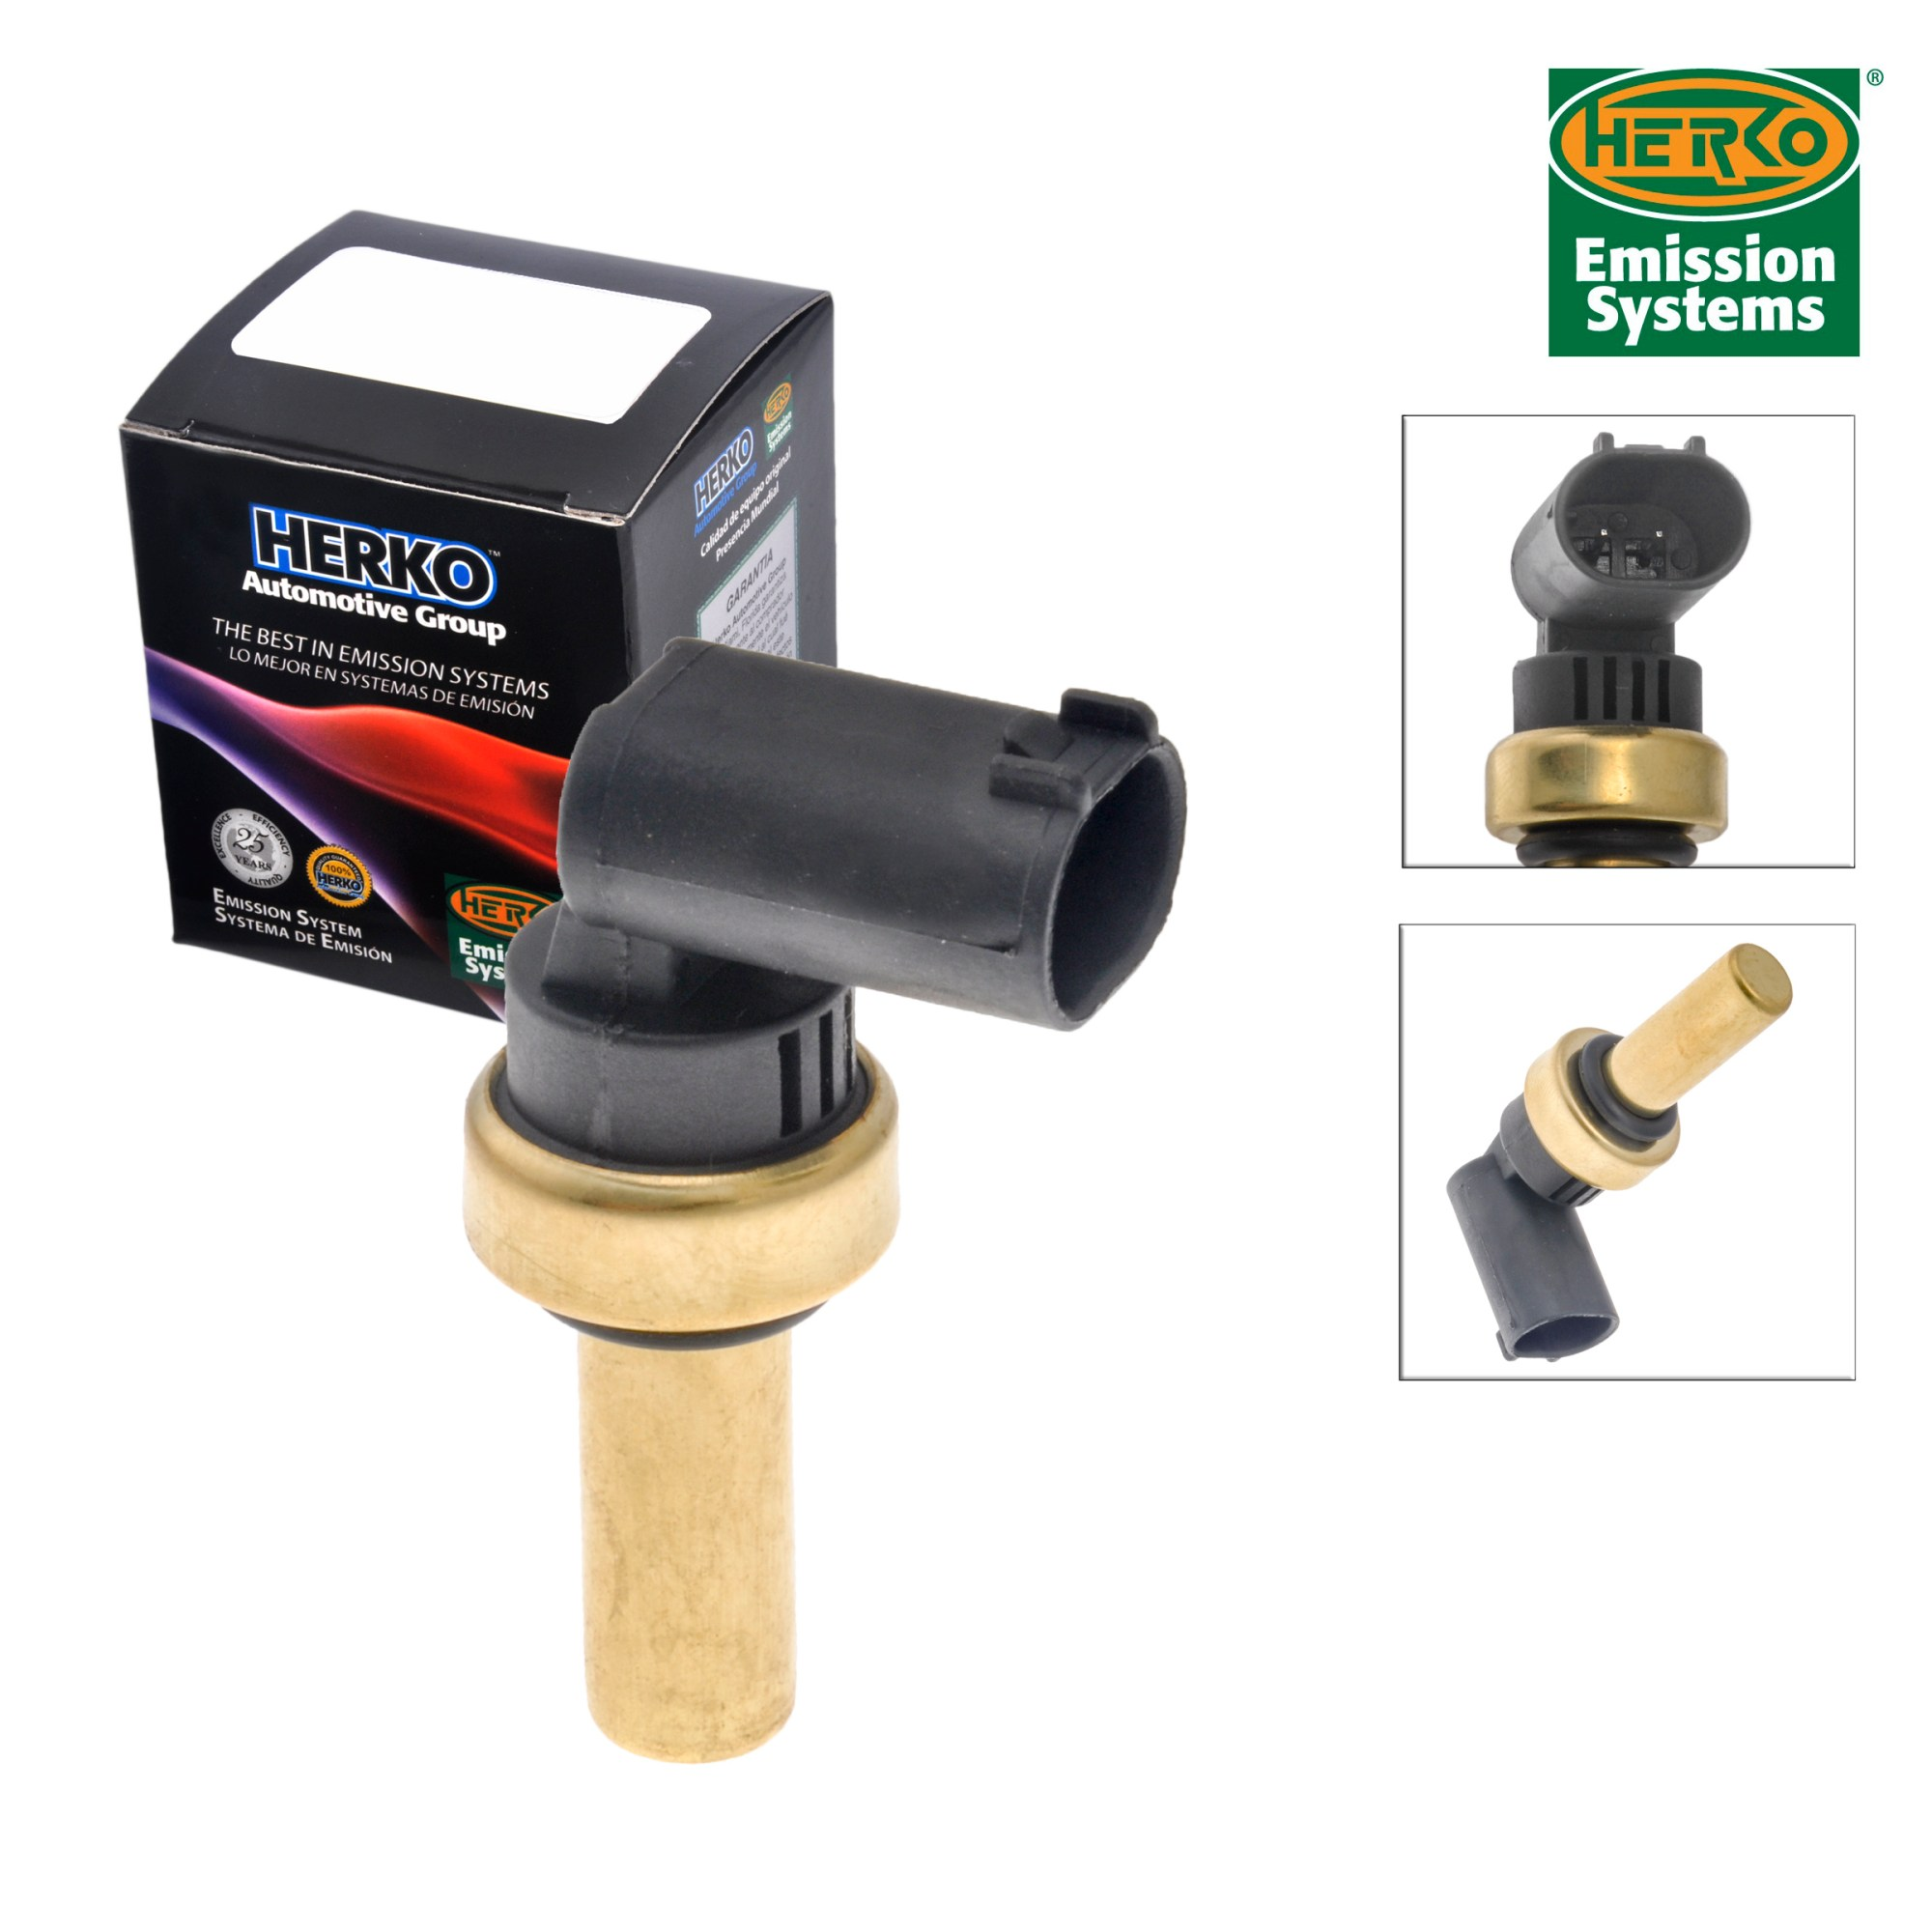 hight resolution of herko engine coolant temperature sensor ect377 for chevrolet saturn volt astra walmart com